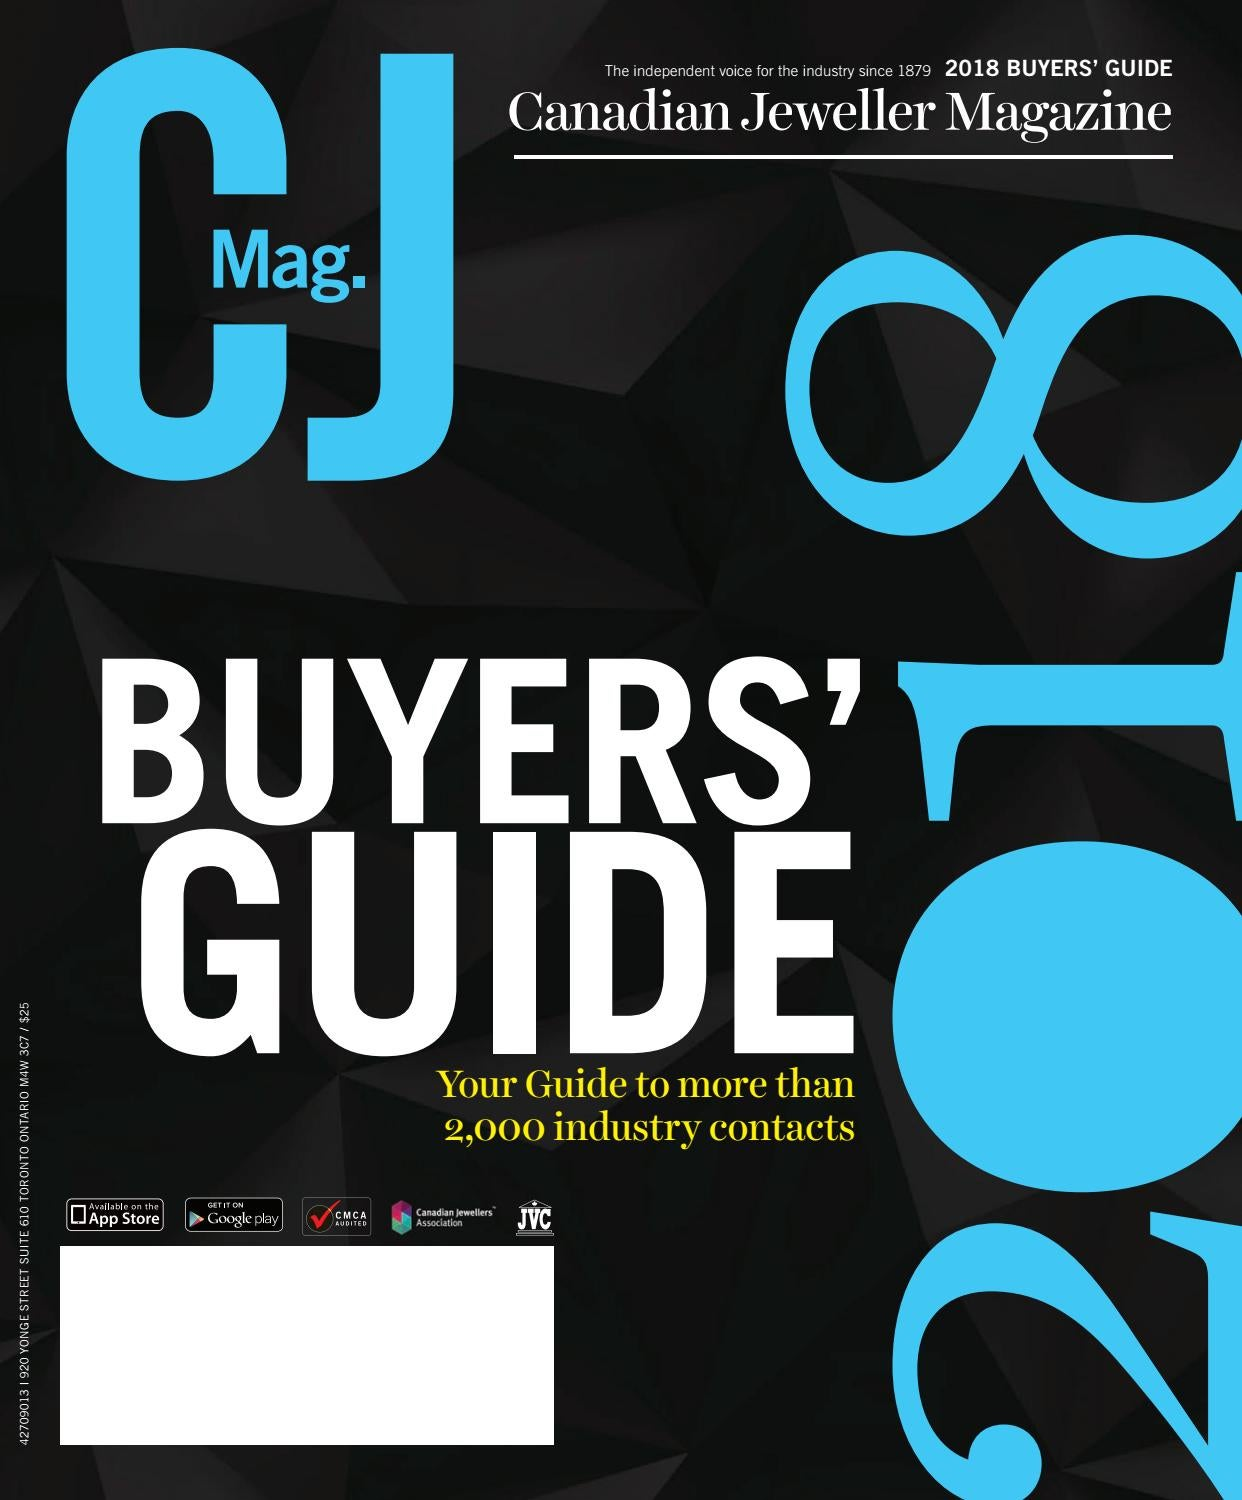 CJ 2018 Buyers' Guide Preview by Canadian Jeweller Magazine